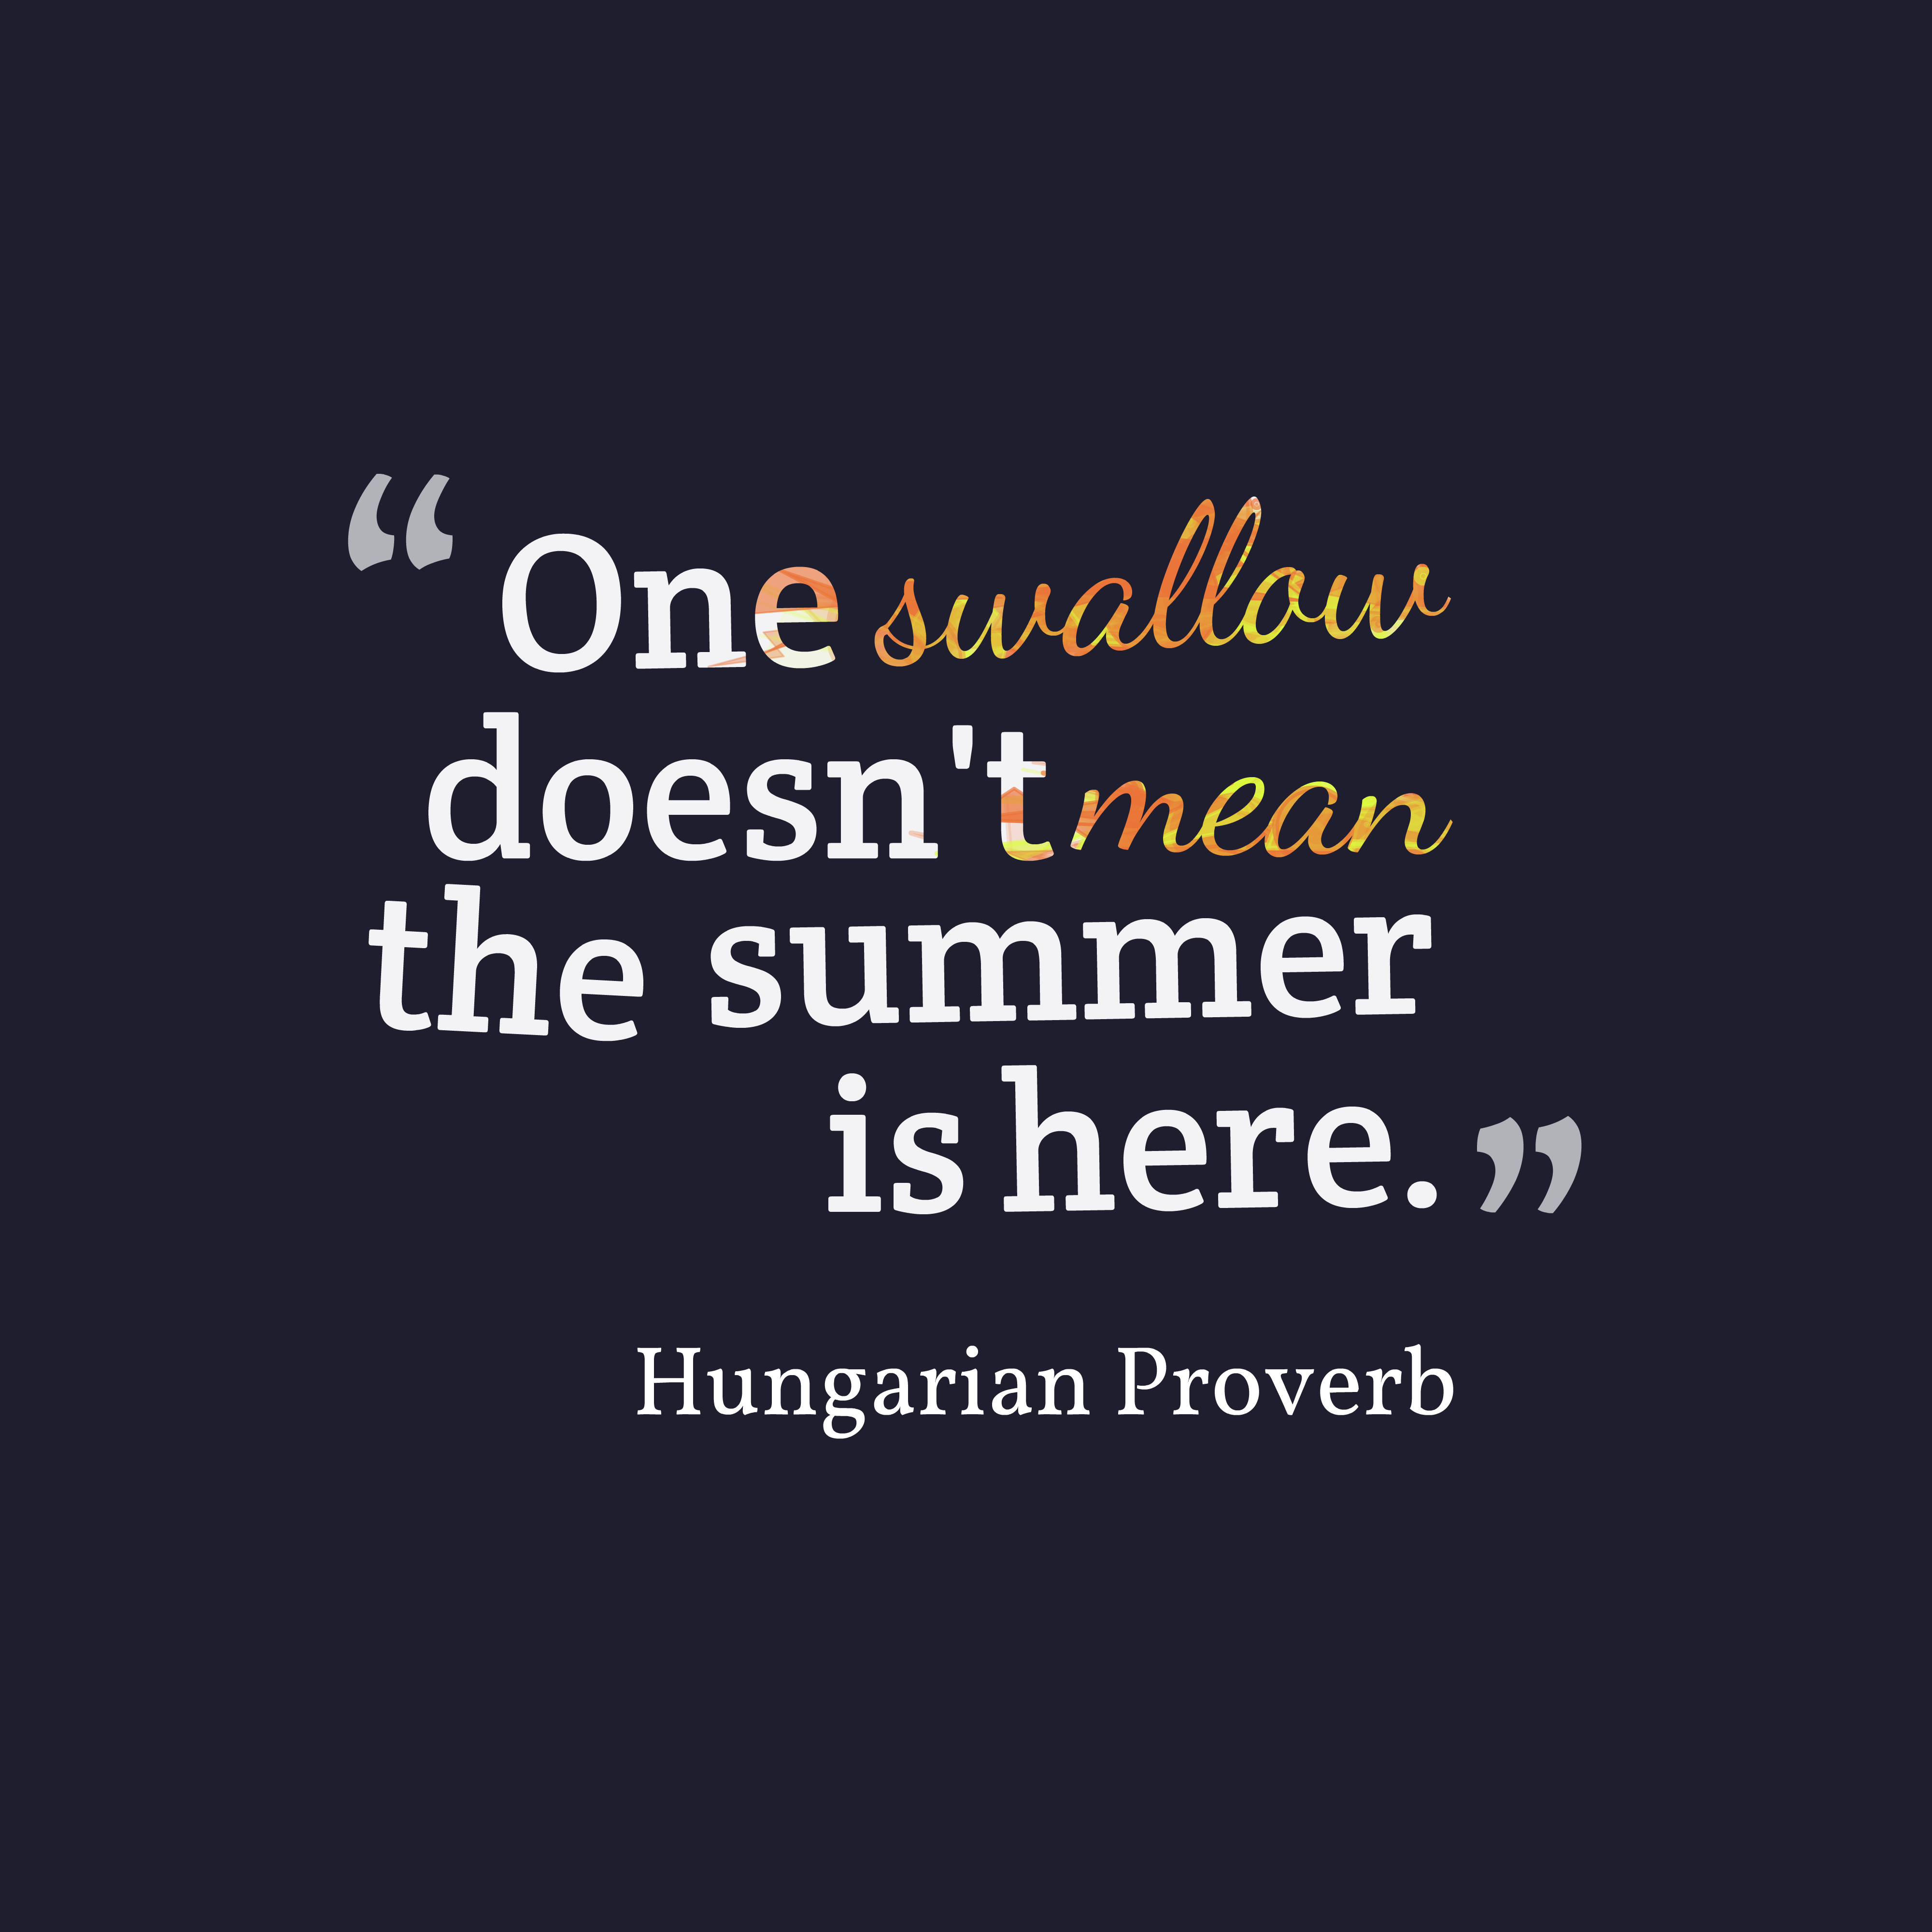 Quotes image of One swallow doesn't mean the summer is here.